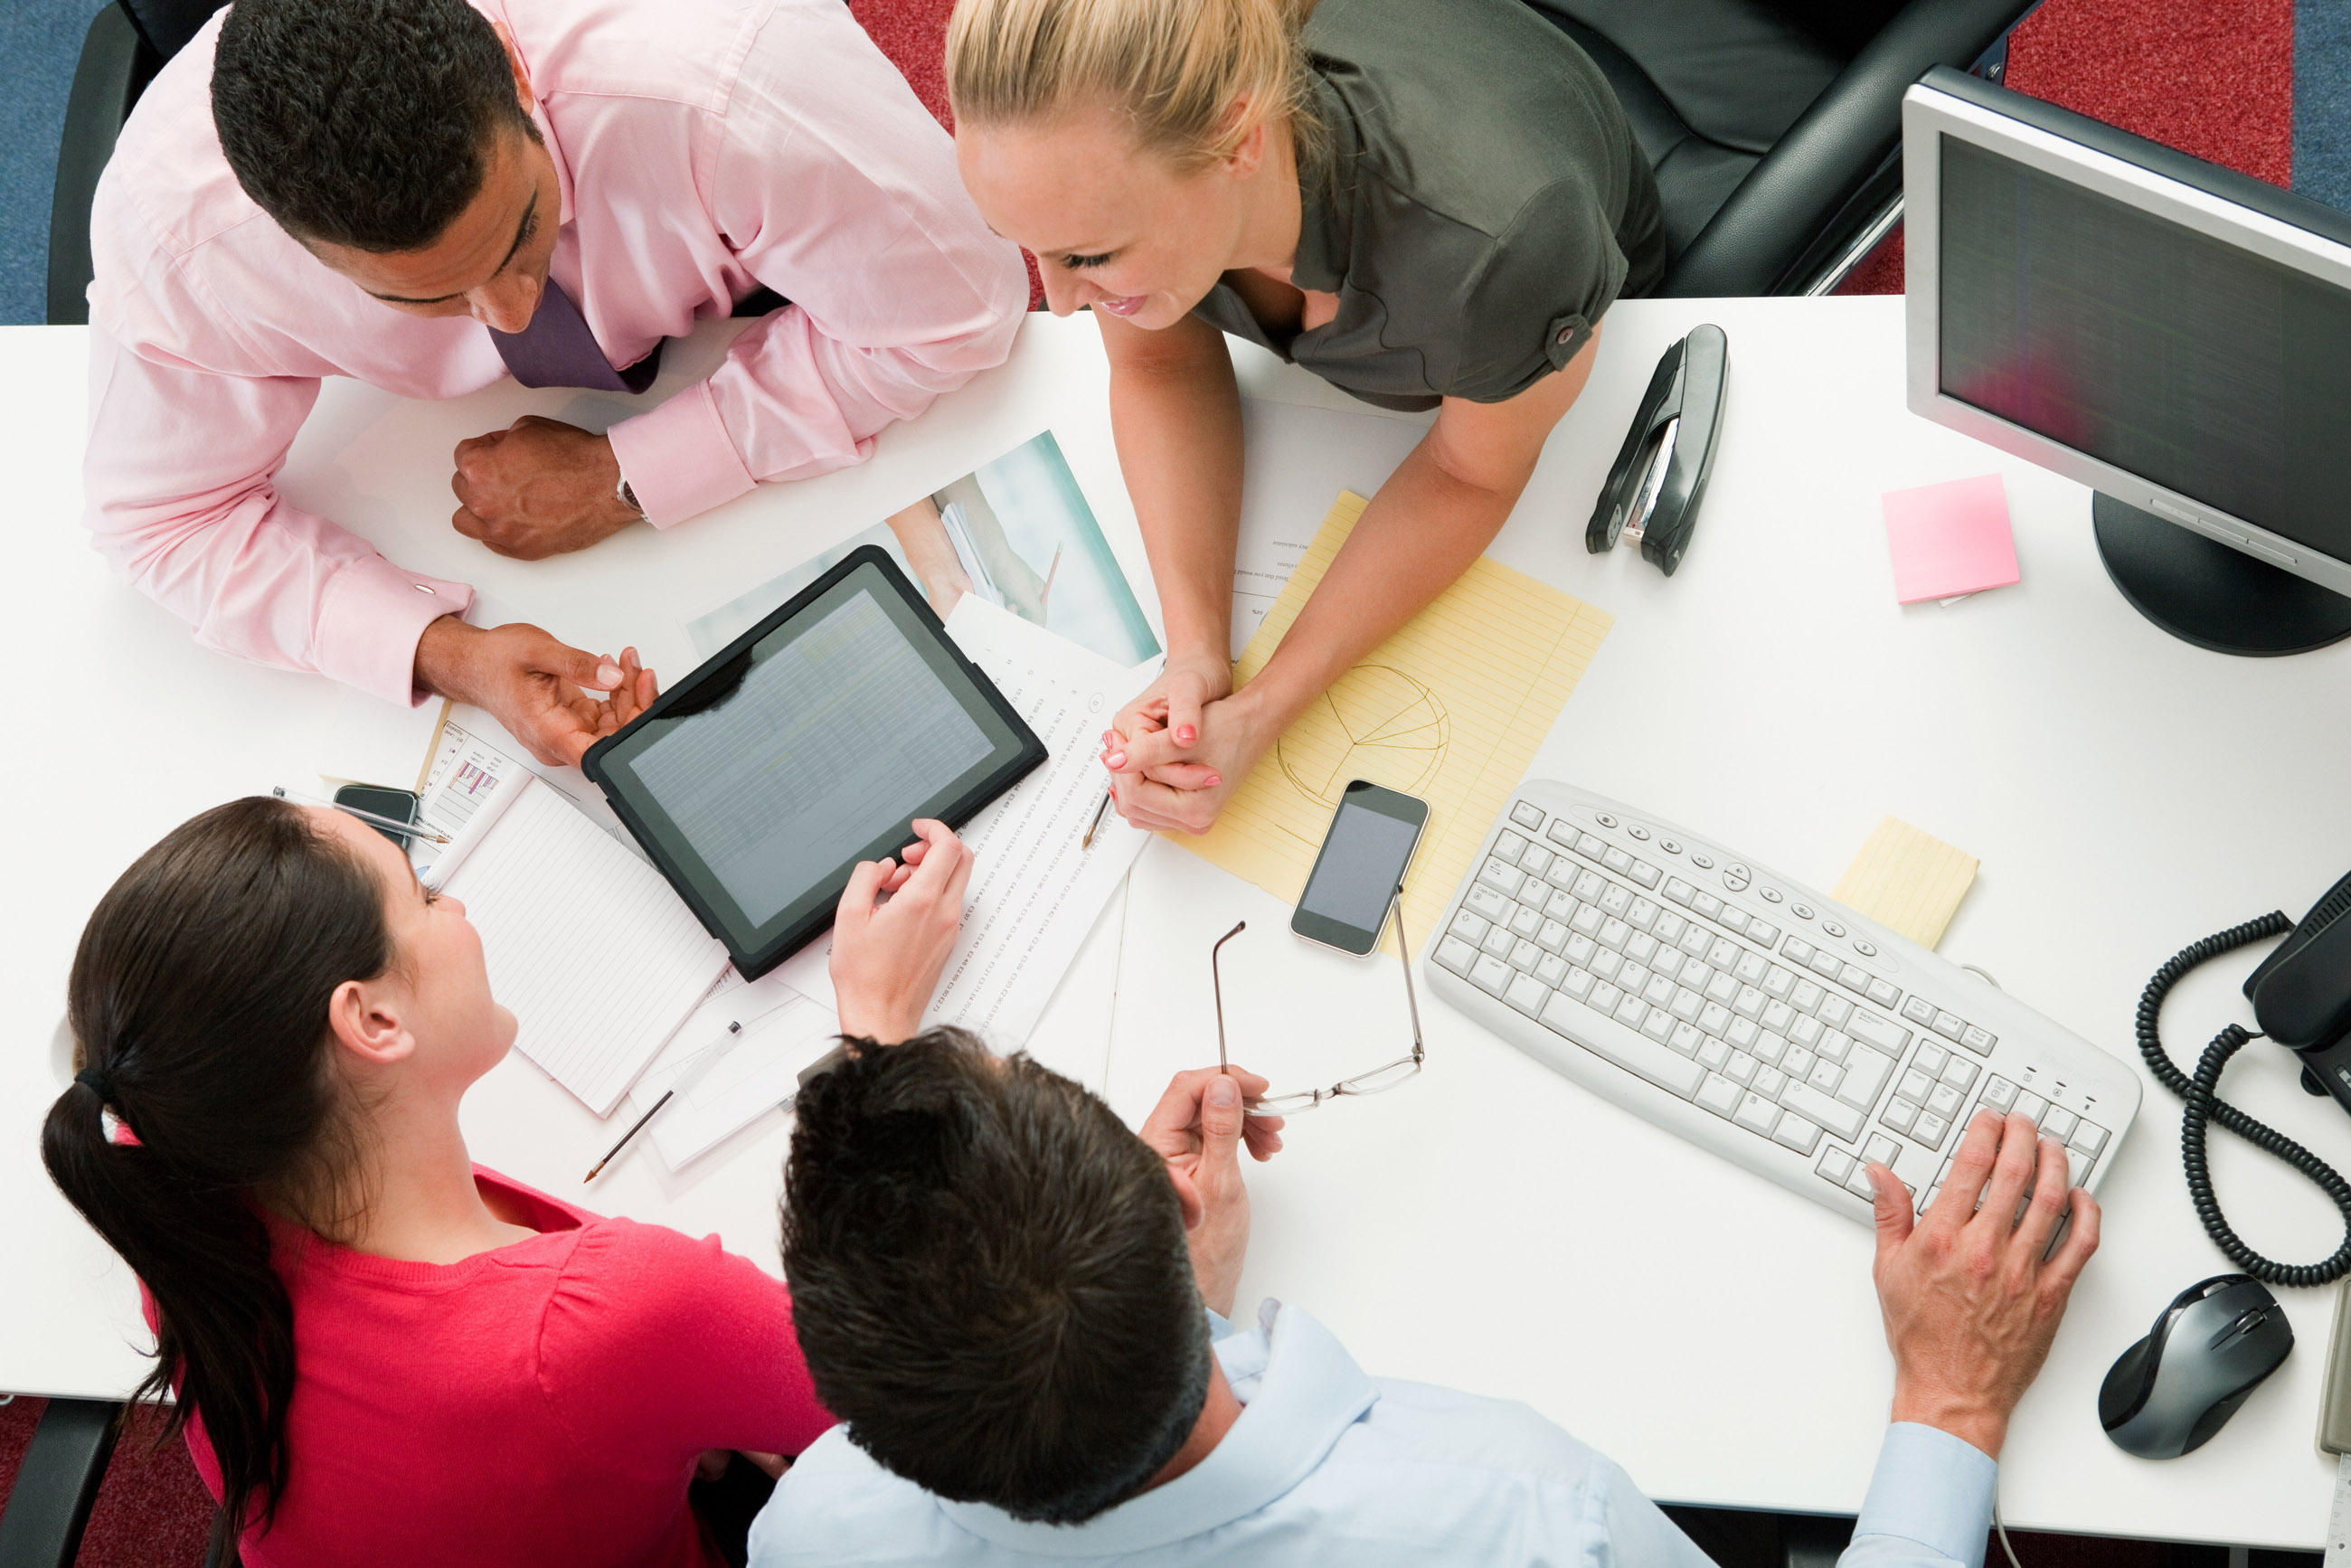 What You Should Know About Collaboration Software